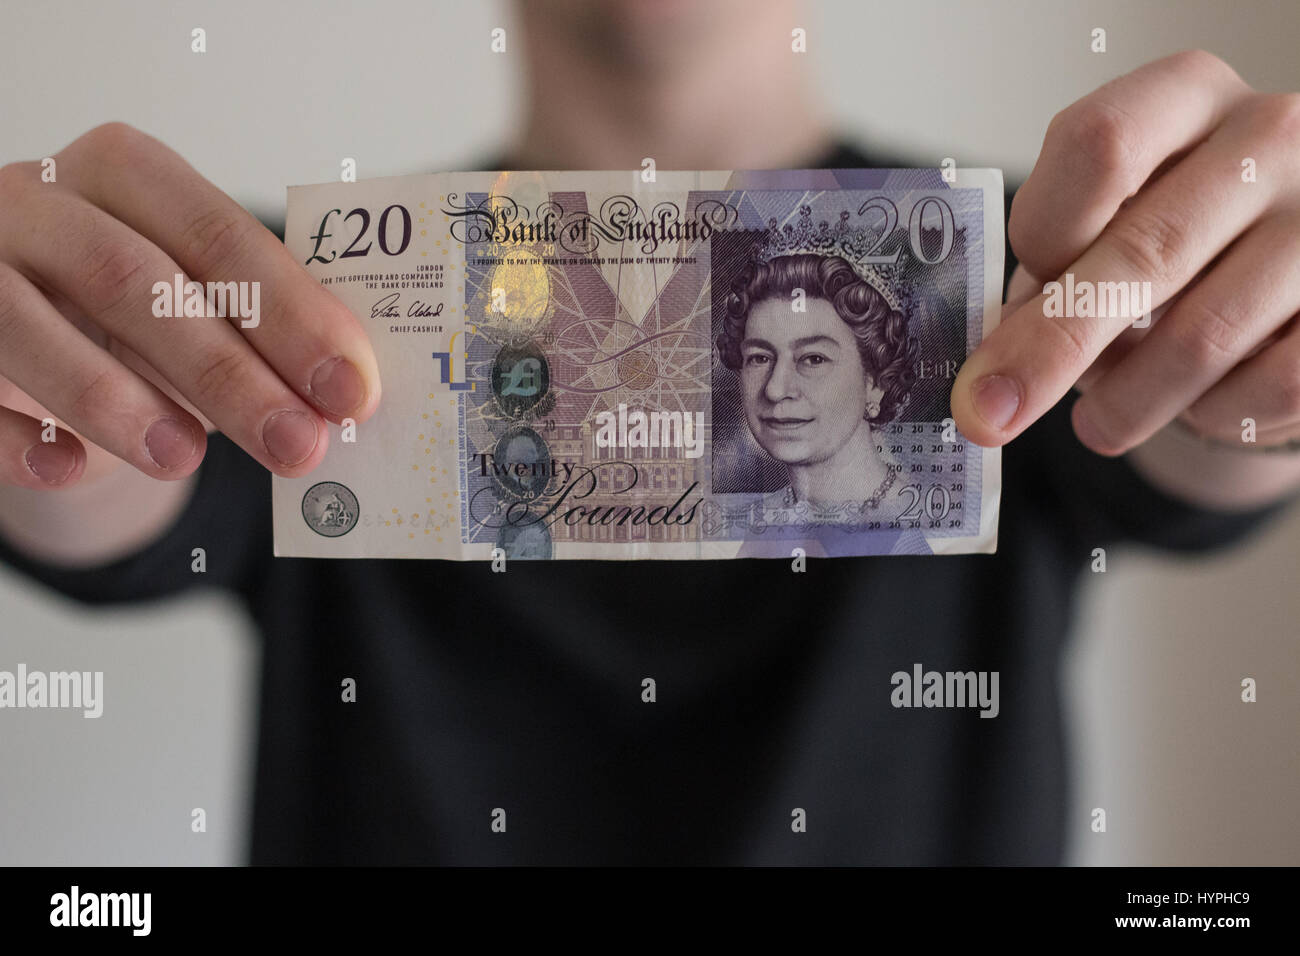 UNITED KINGDON, WALES. April 4 2017. The bank of England considers palm oil for £20 polymer notes instead of - Stock Image